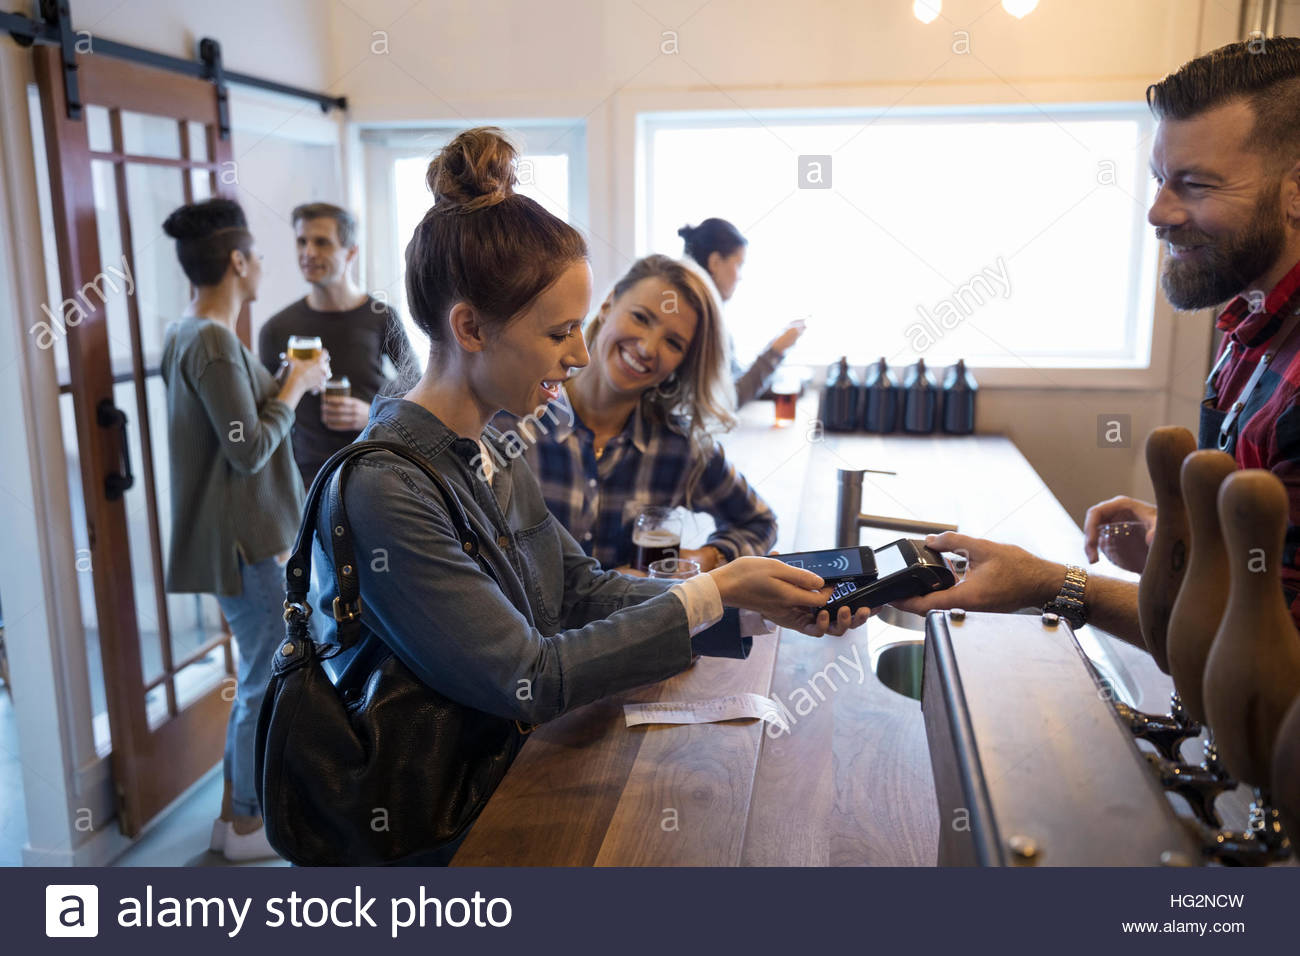 Female friends paying bartender for beers with smart phone contactless payment in brewery tasting room Stock Photo